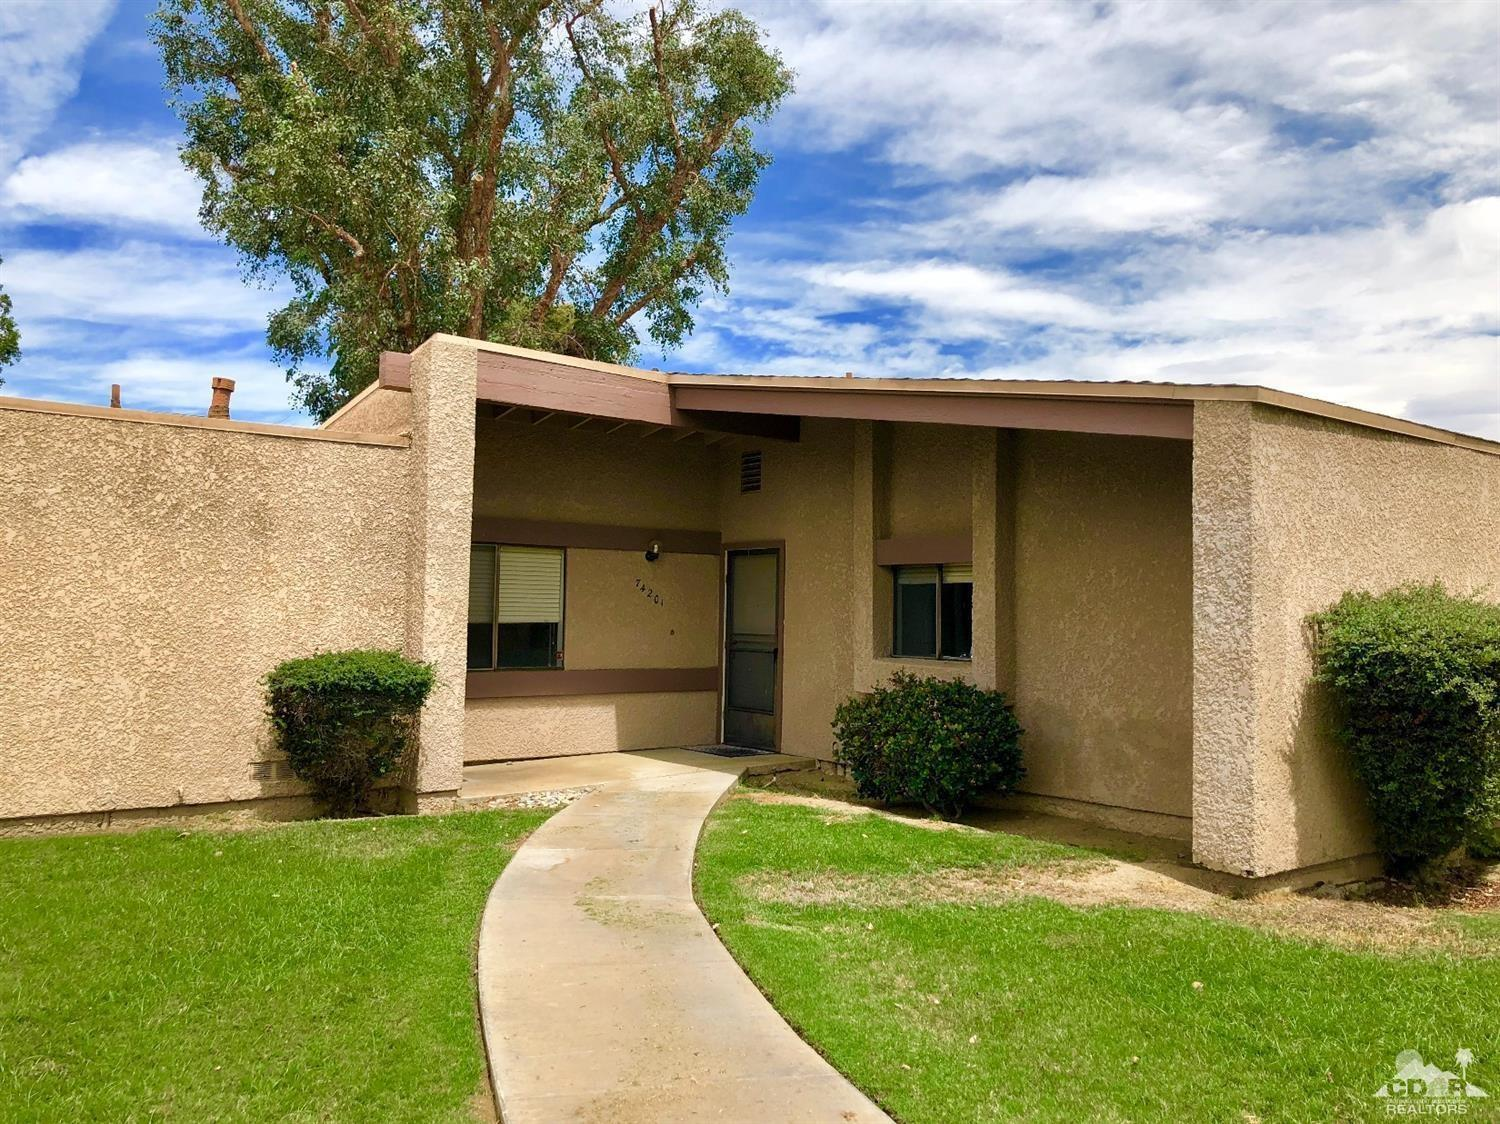 74201 Catalina Way, Palm Desert, CA 92260 For Rent | Trulia